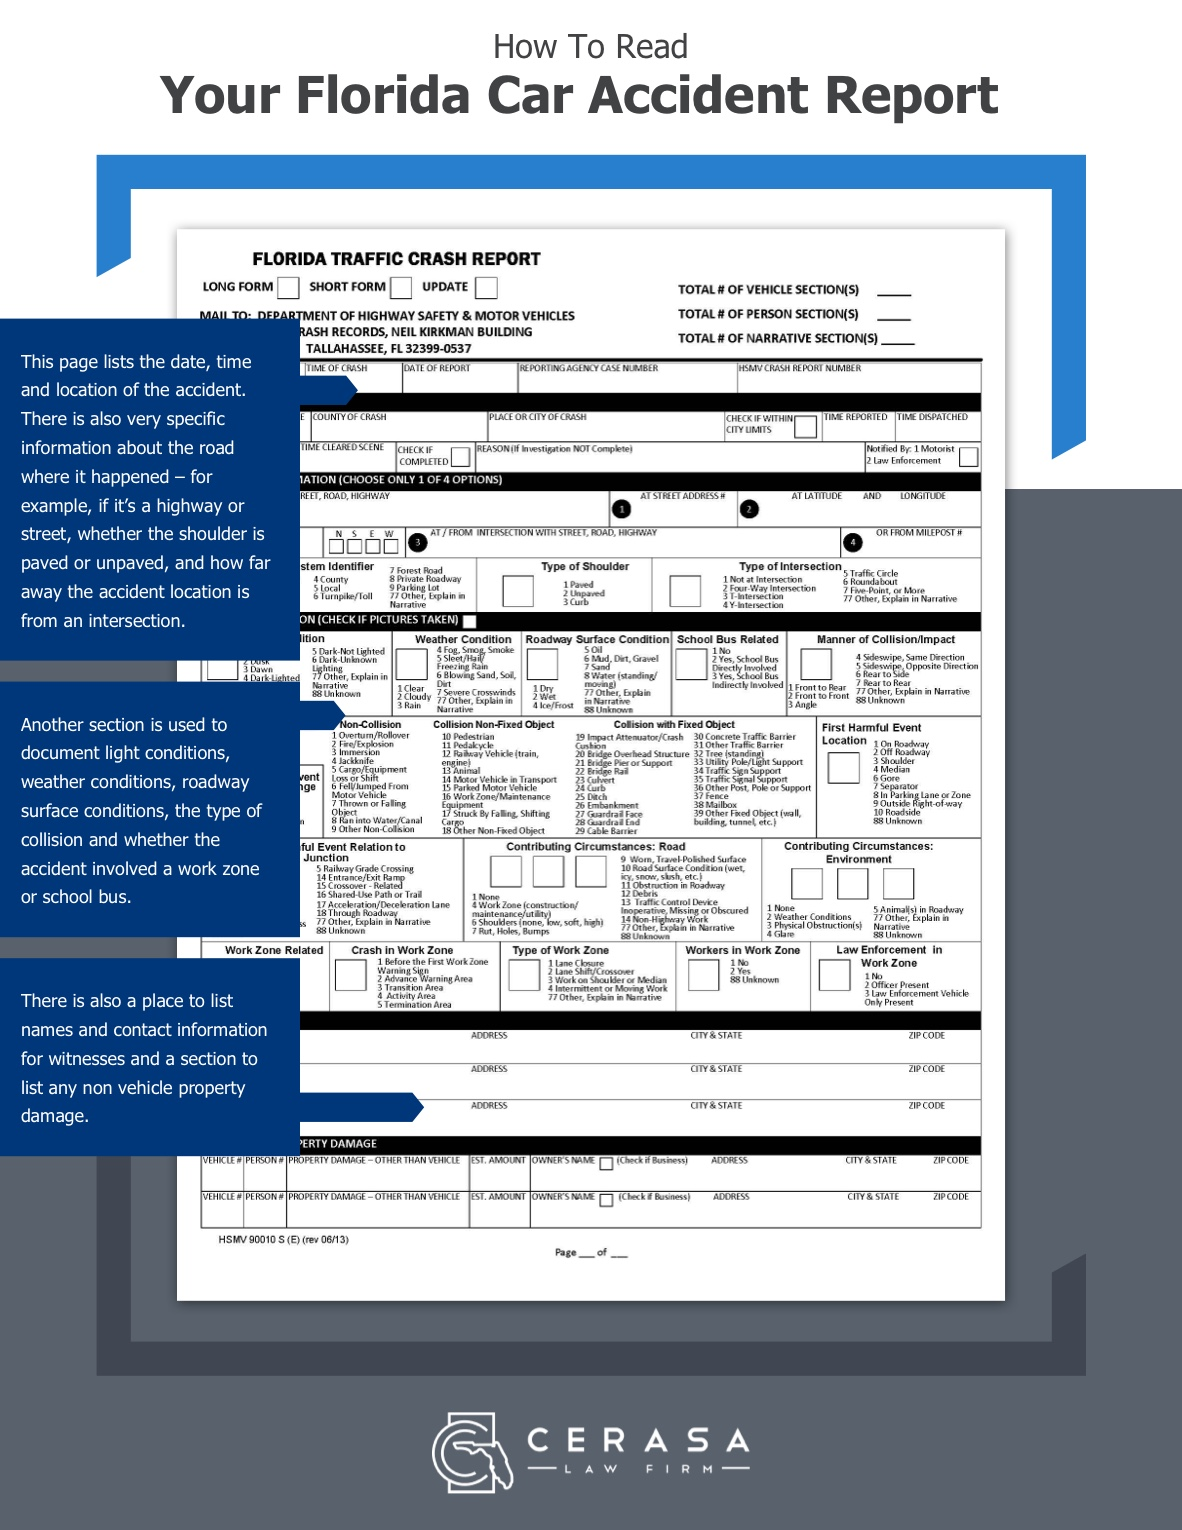 How To Read Your Accident Report page 1